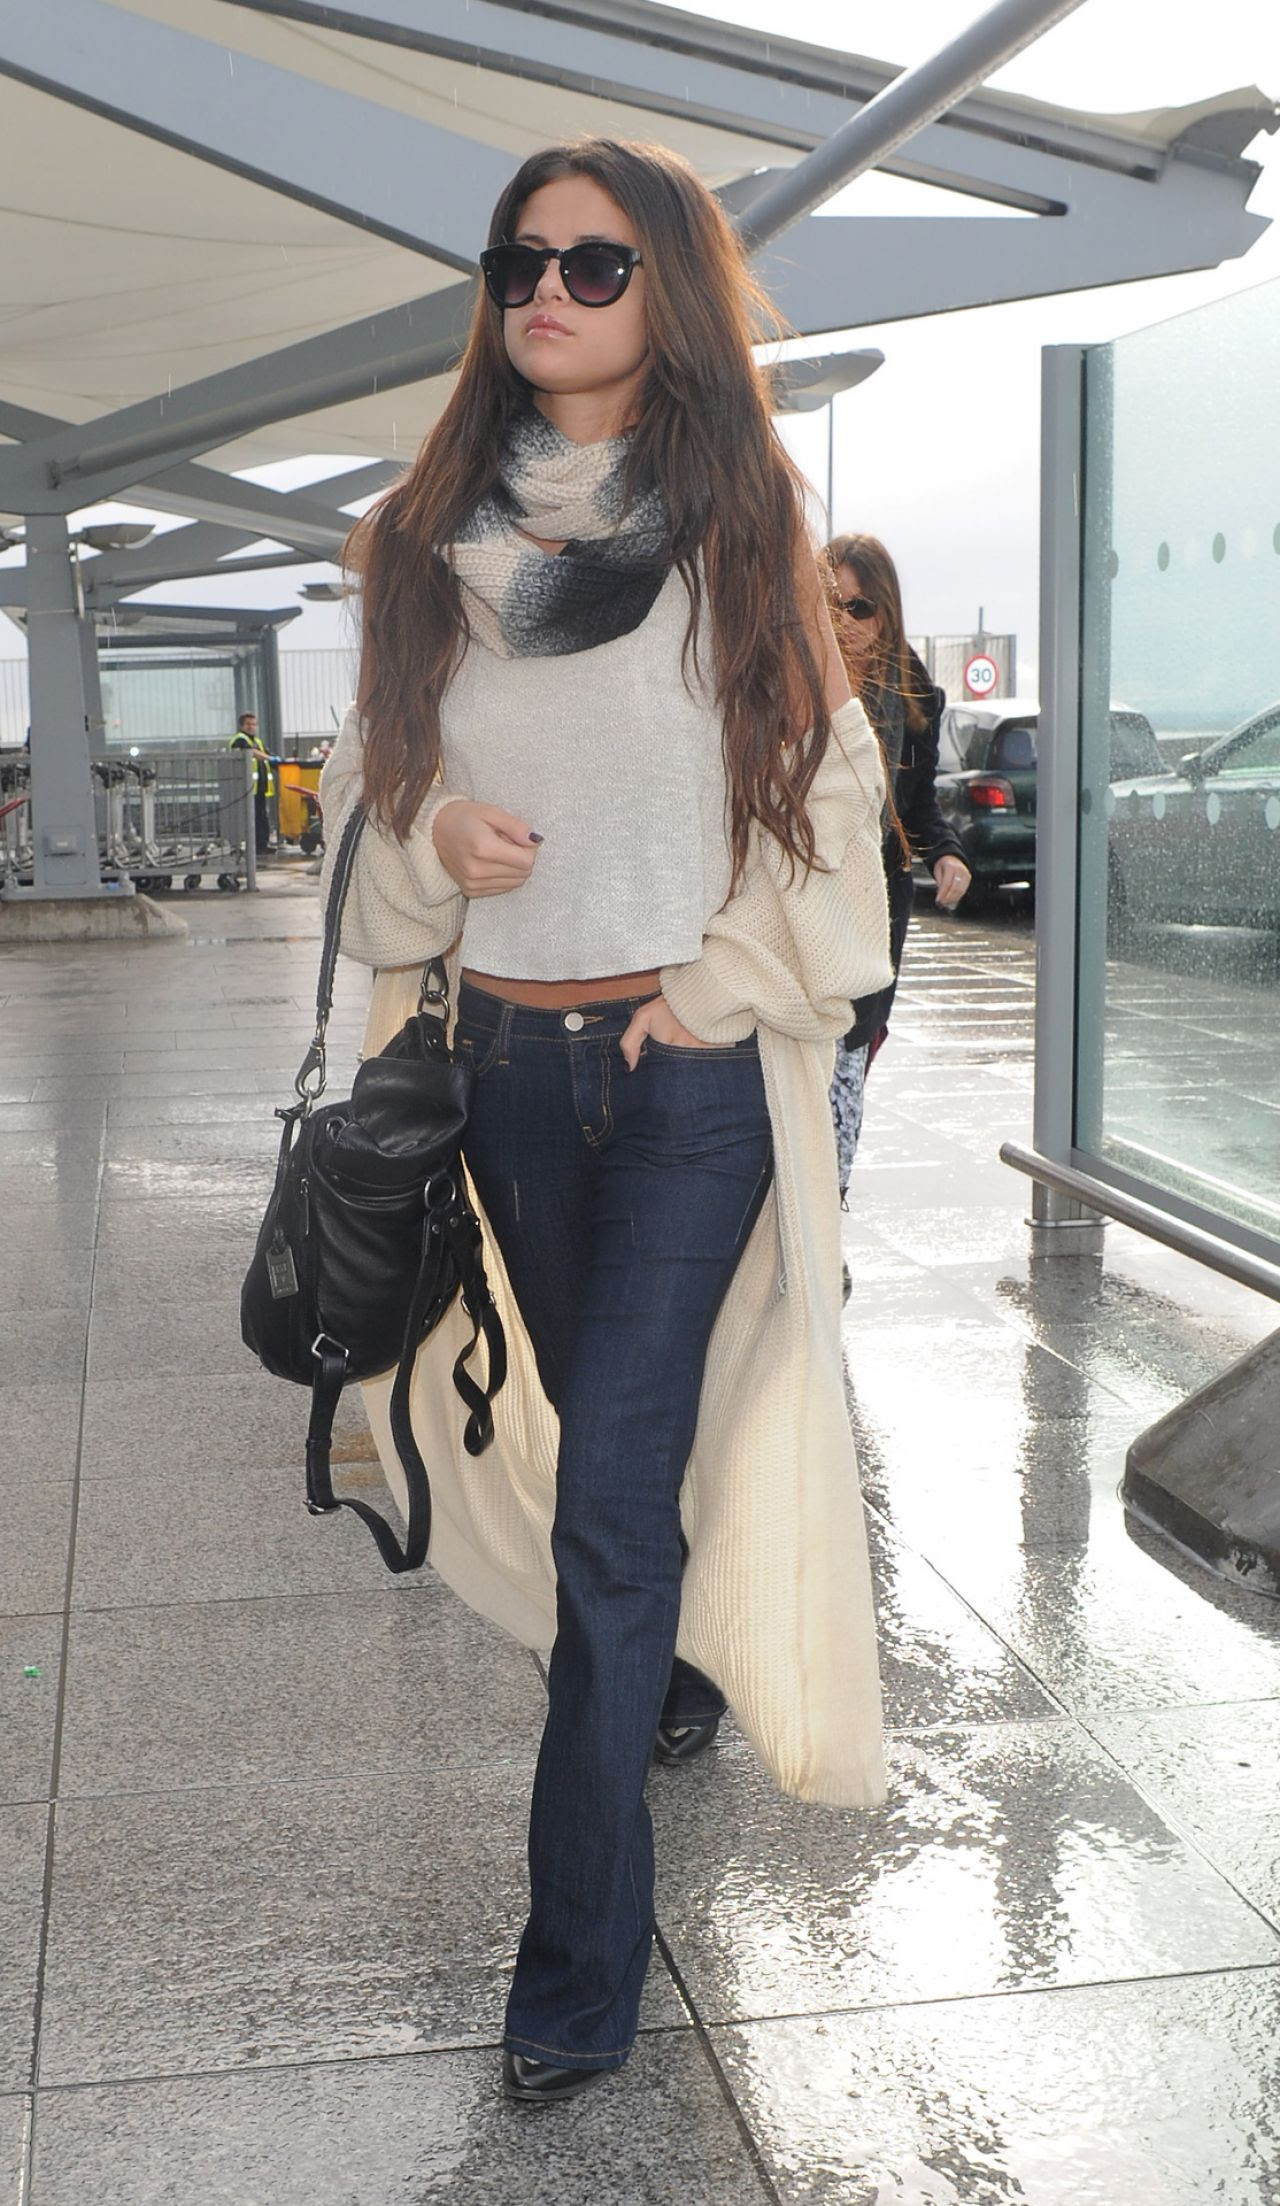 selena gomez street style  at heathrow airport in london